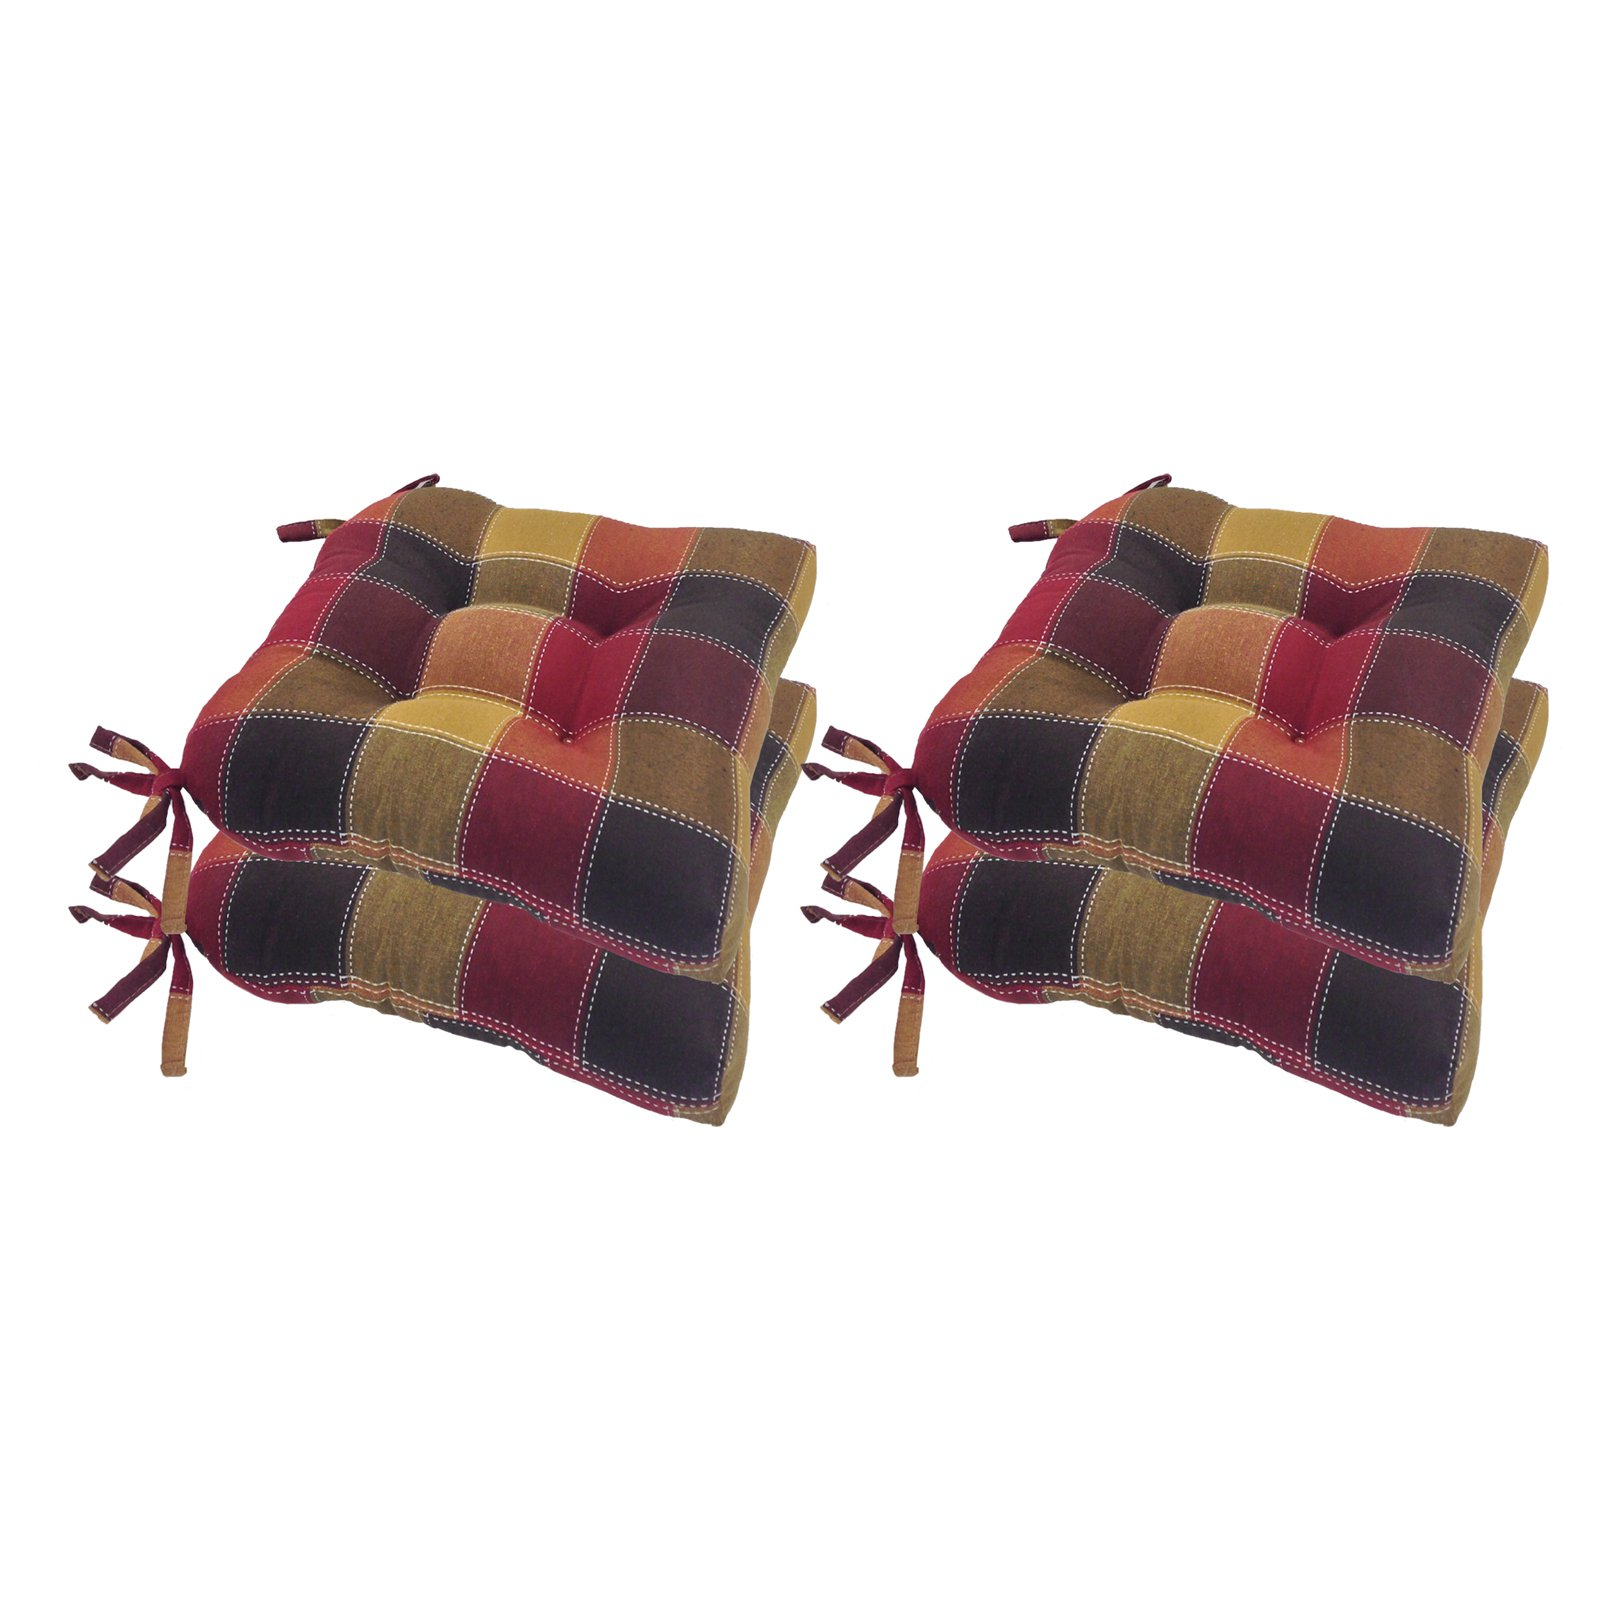 Arlee 16 x 16 in. Harris Plaid Woven Chair Pad Set of 4 by Essentials